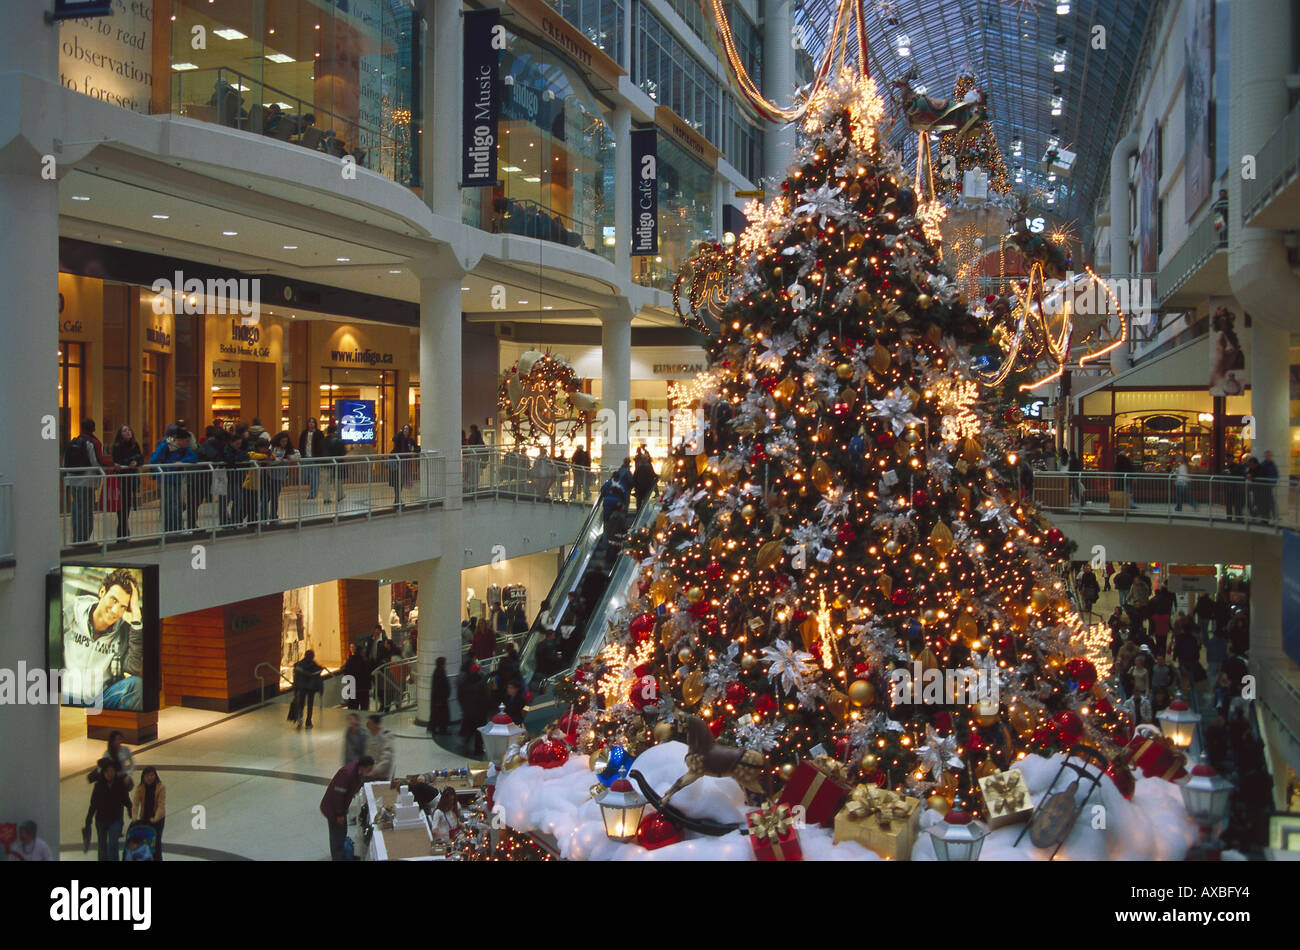 Oct 02, · Canada's best selection of Christmas village houses,. figurines, table accents, and accessories. These Toronto Christmas Shopping Destinations Will Make Your Season Jolly and Bright. Initially an online store, The Tuck Shop Trading Company was inspired by a.